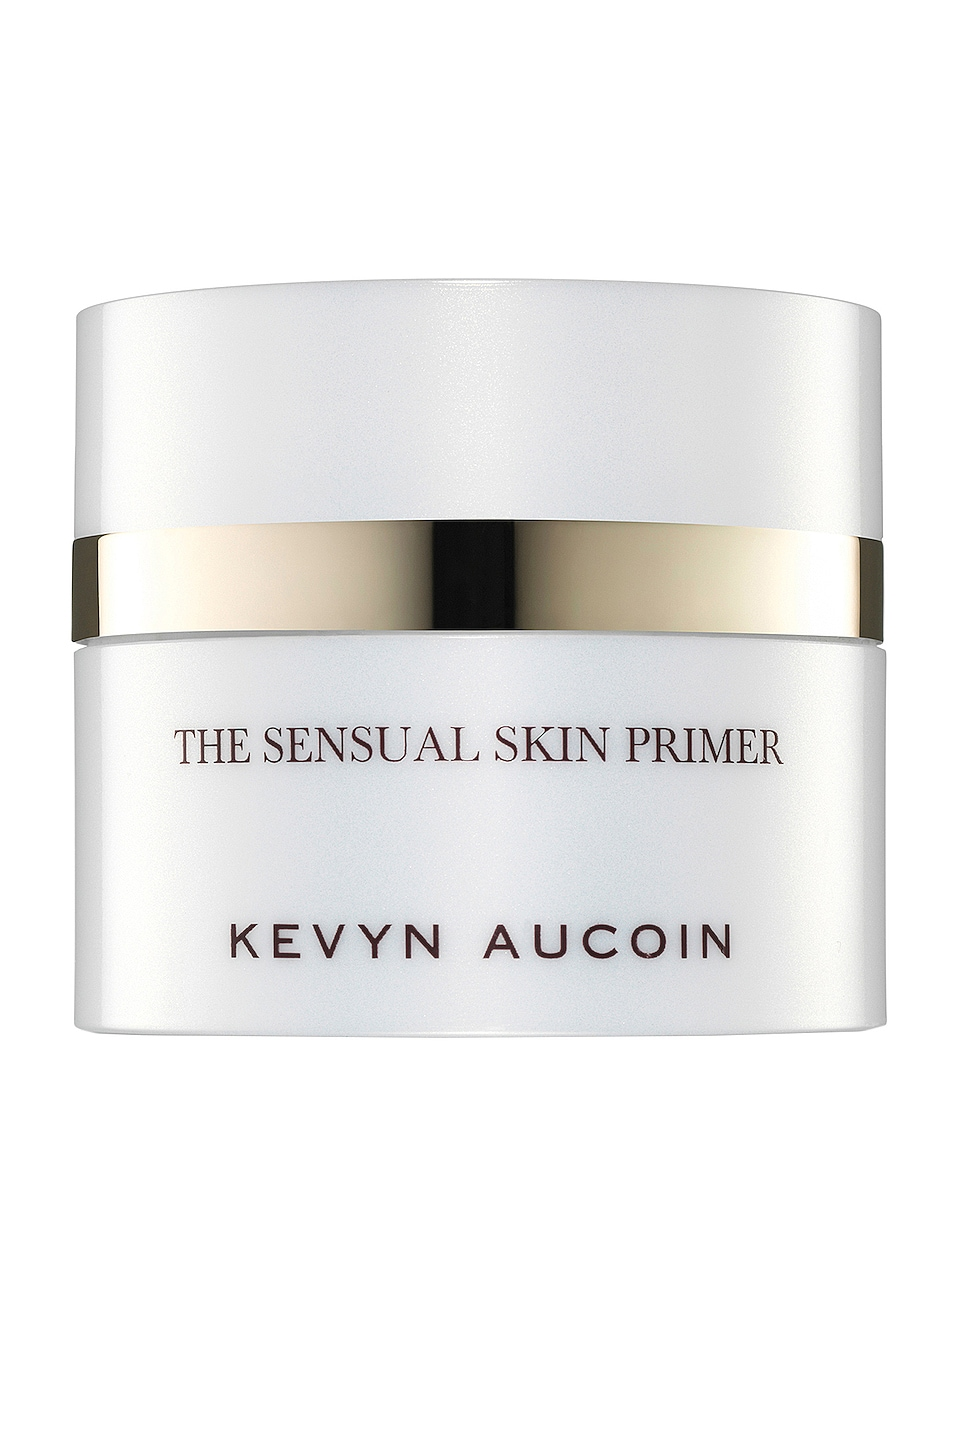 Kevyn Aucoin BASE THE SENSUAL SKIN PRIMER